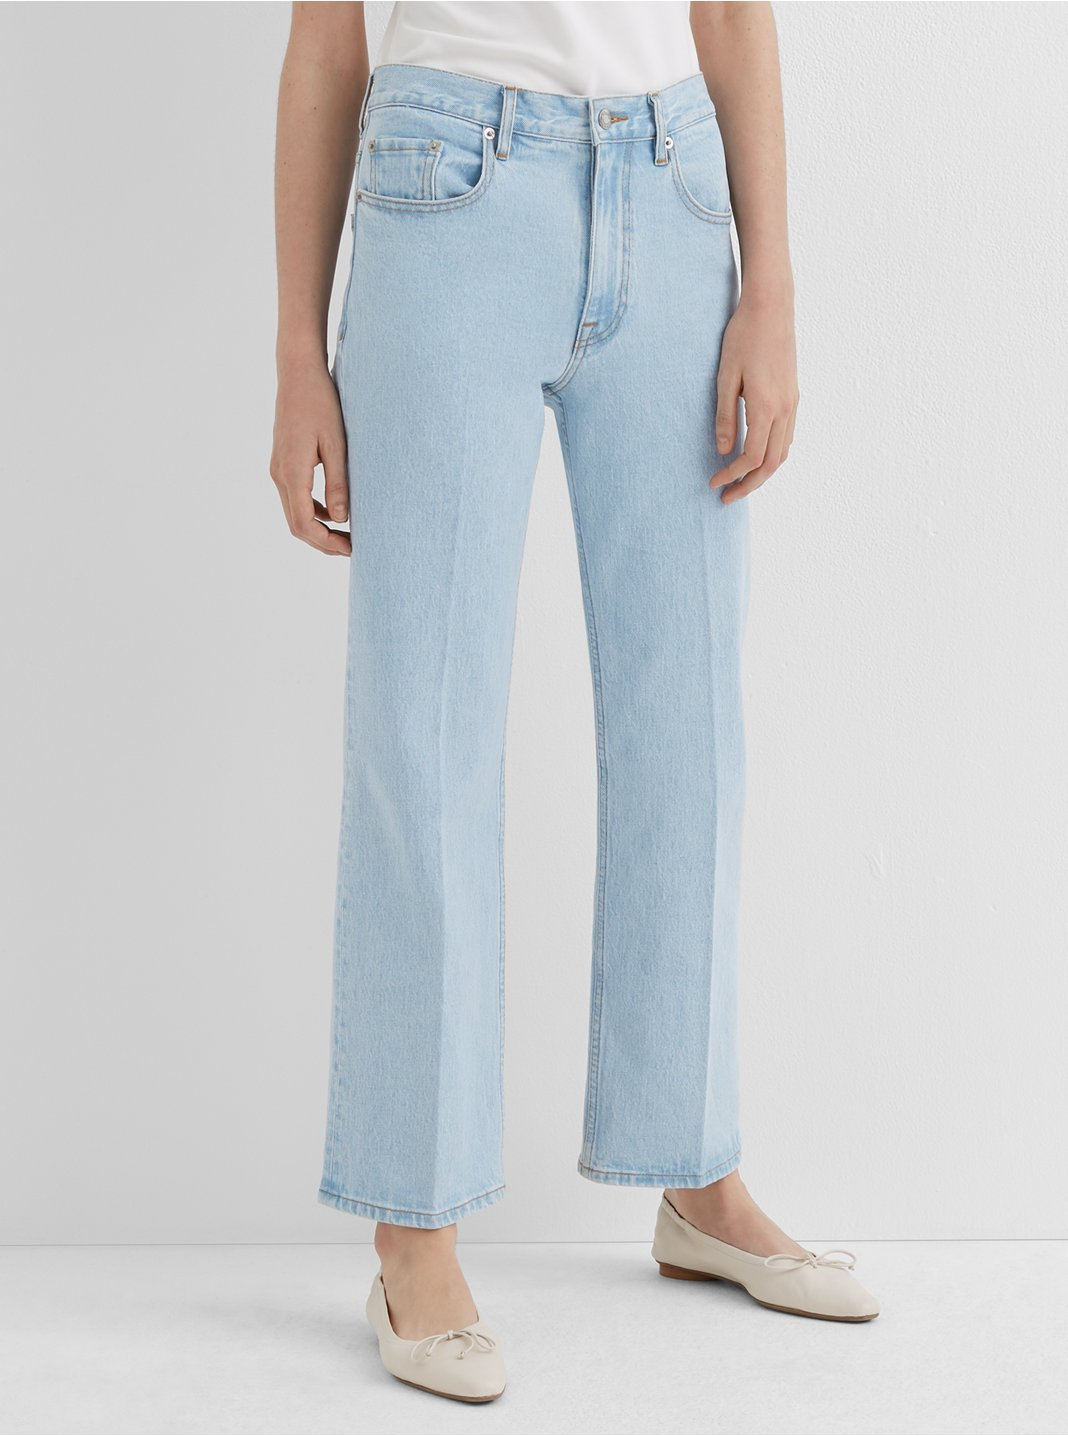 The Structured Bootcut